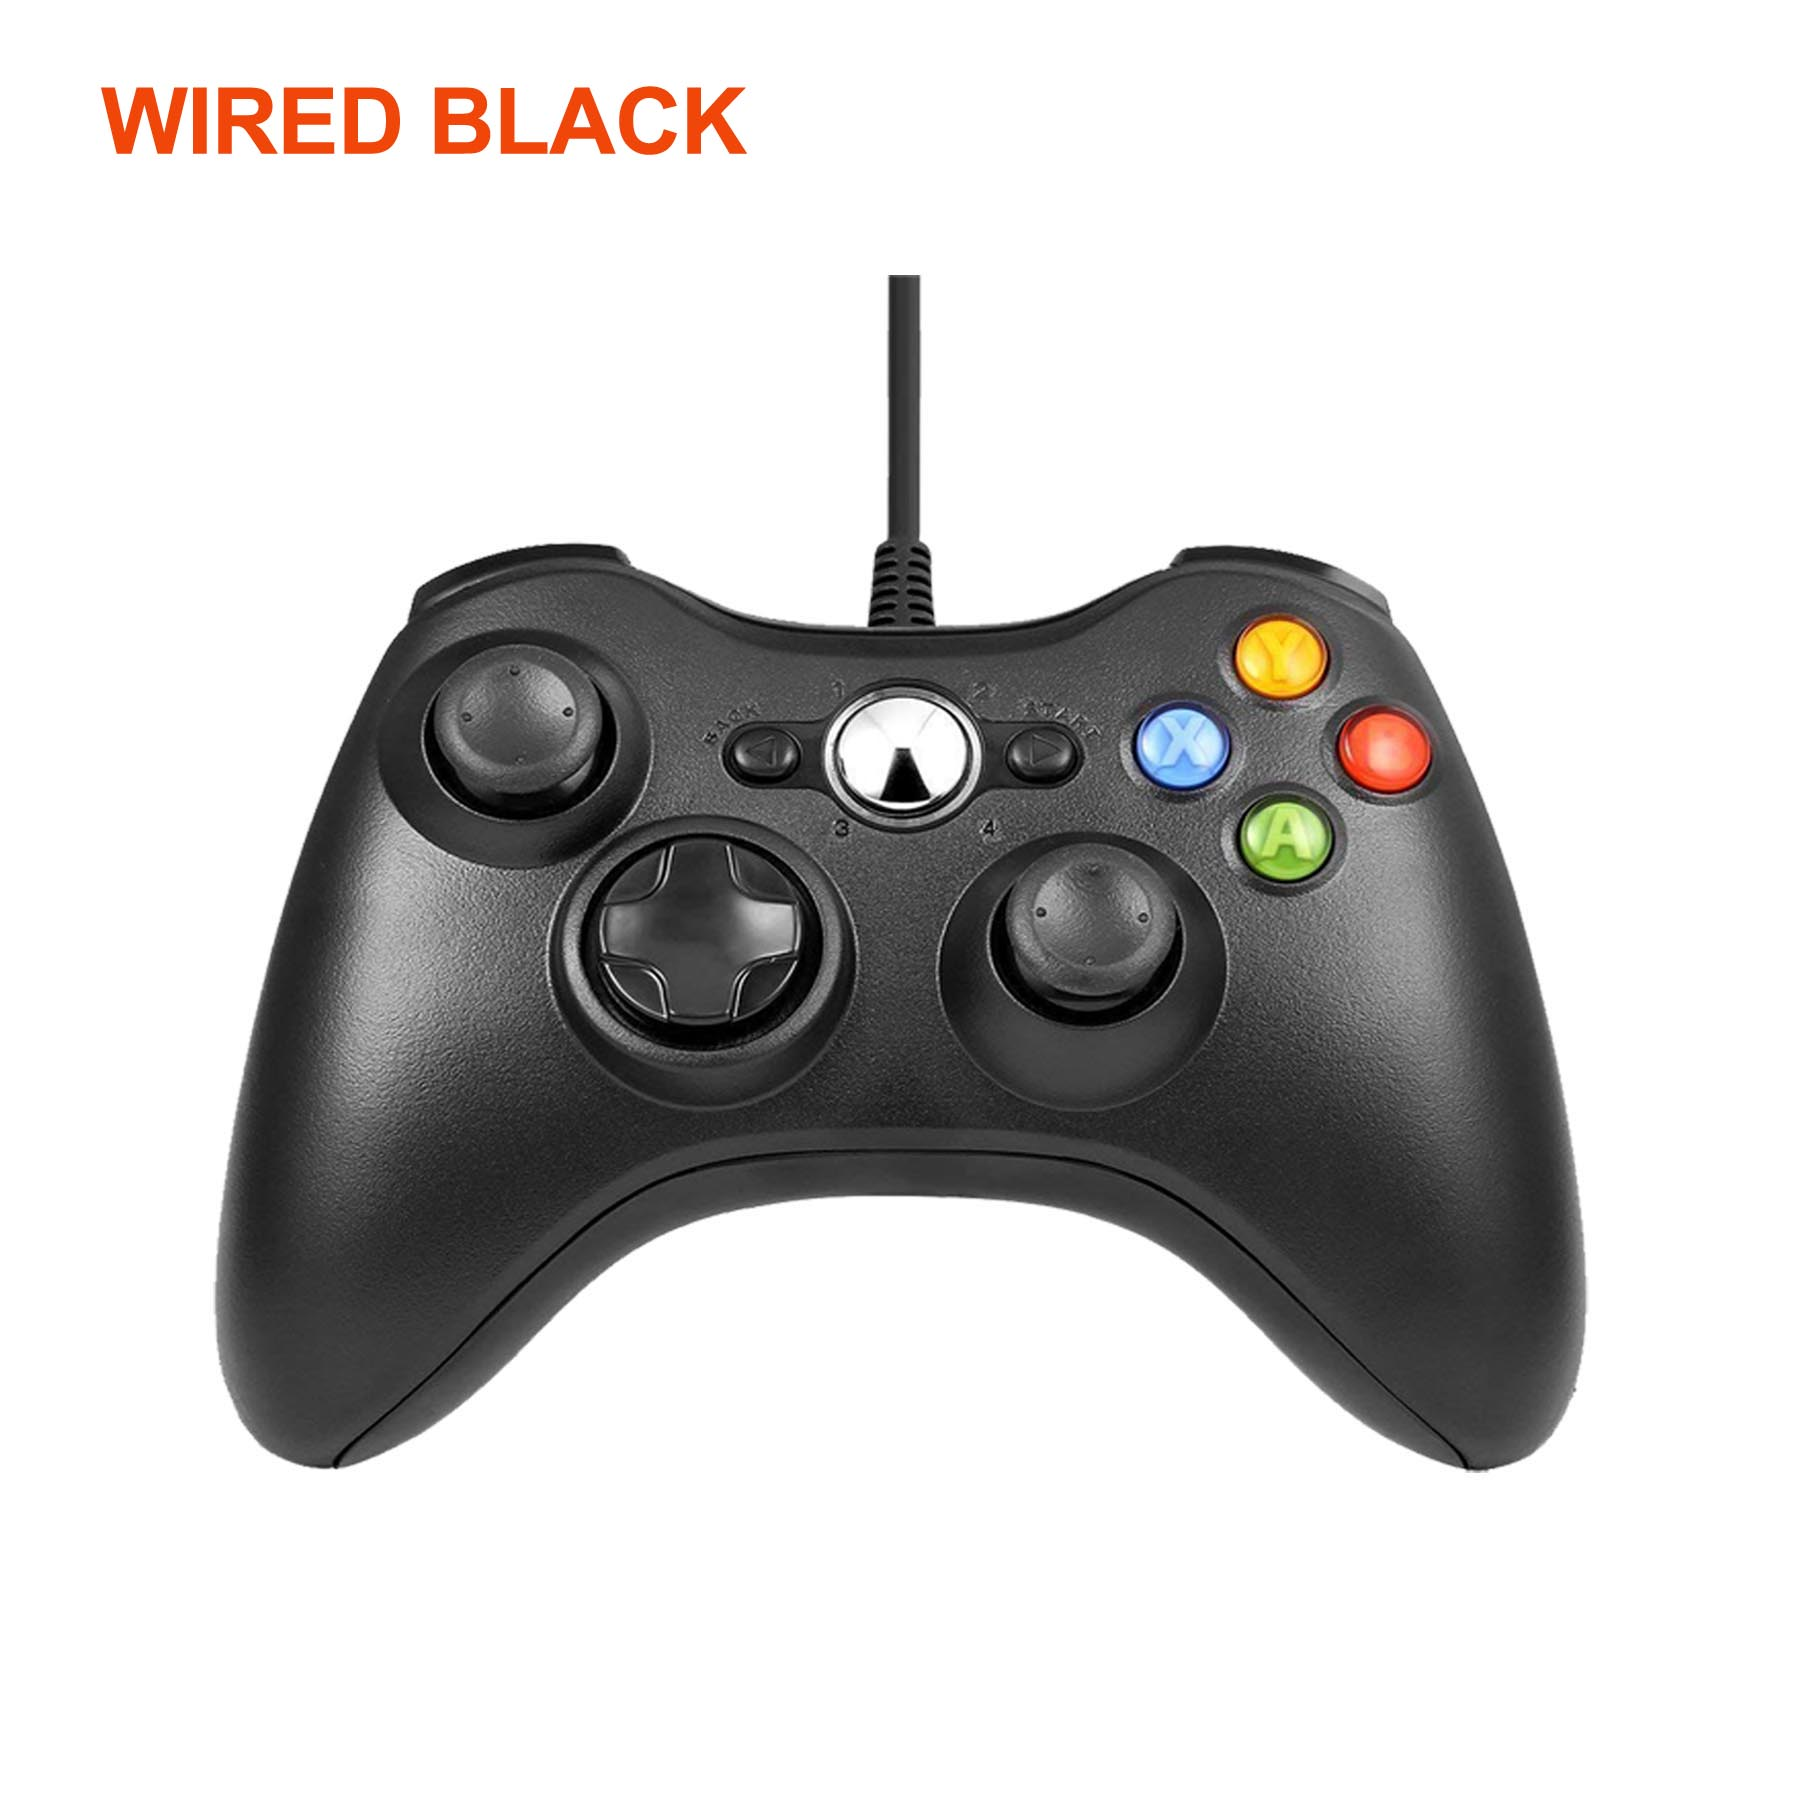 Wired Black